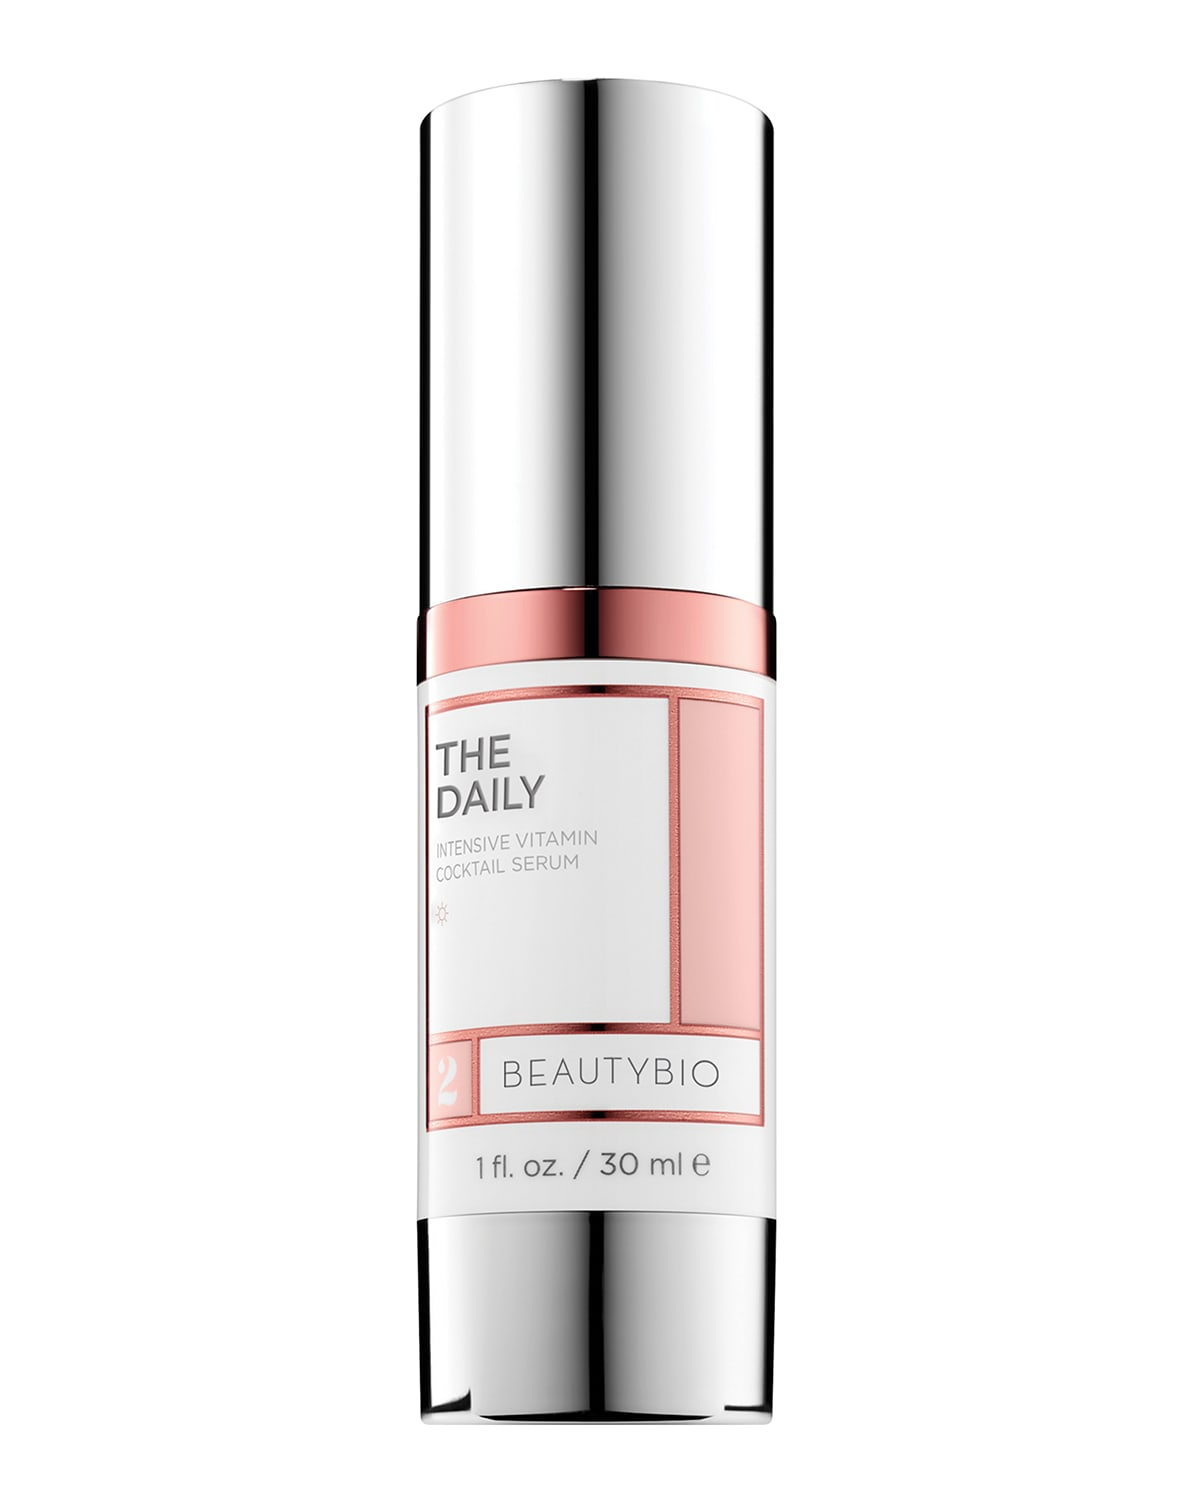 1.0 oz. THE DAILY Intensive Vitamin Cocktail Serum